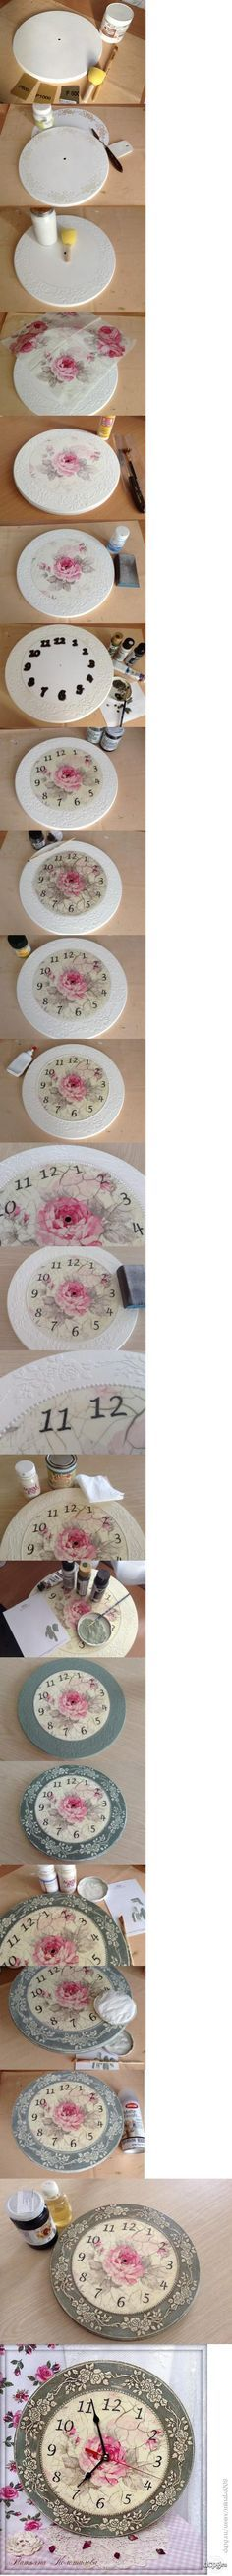 Decoupage clock, the